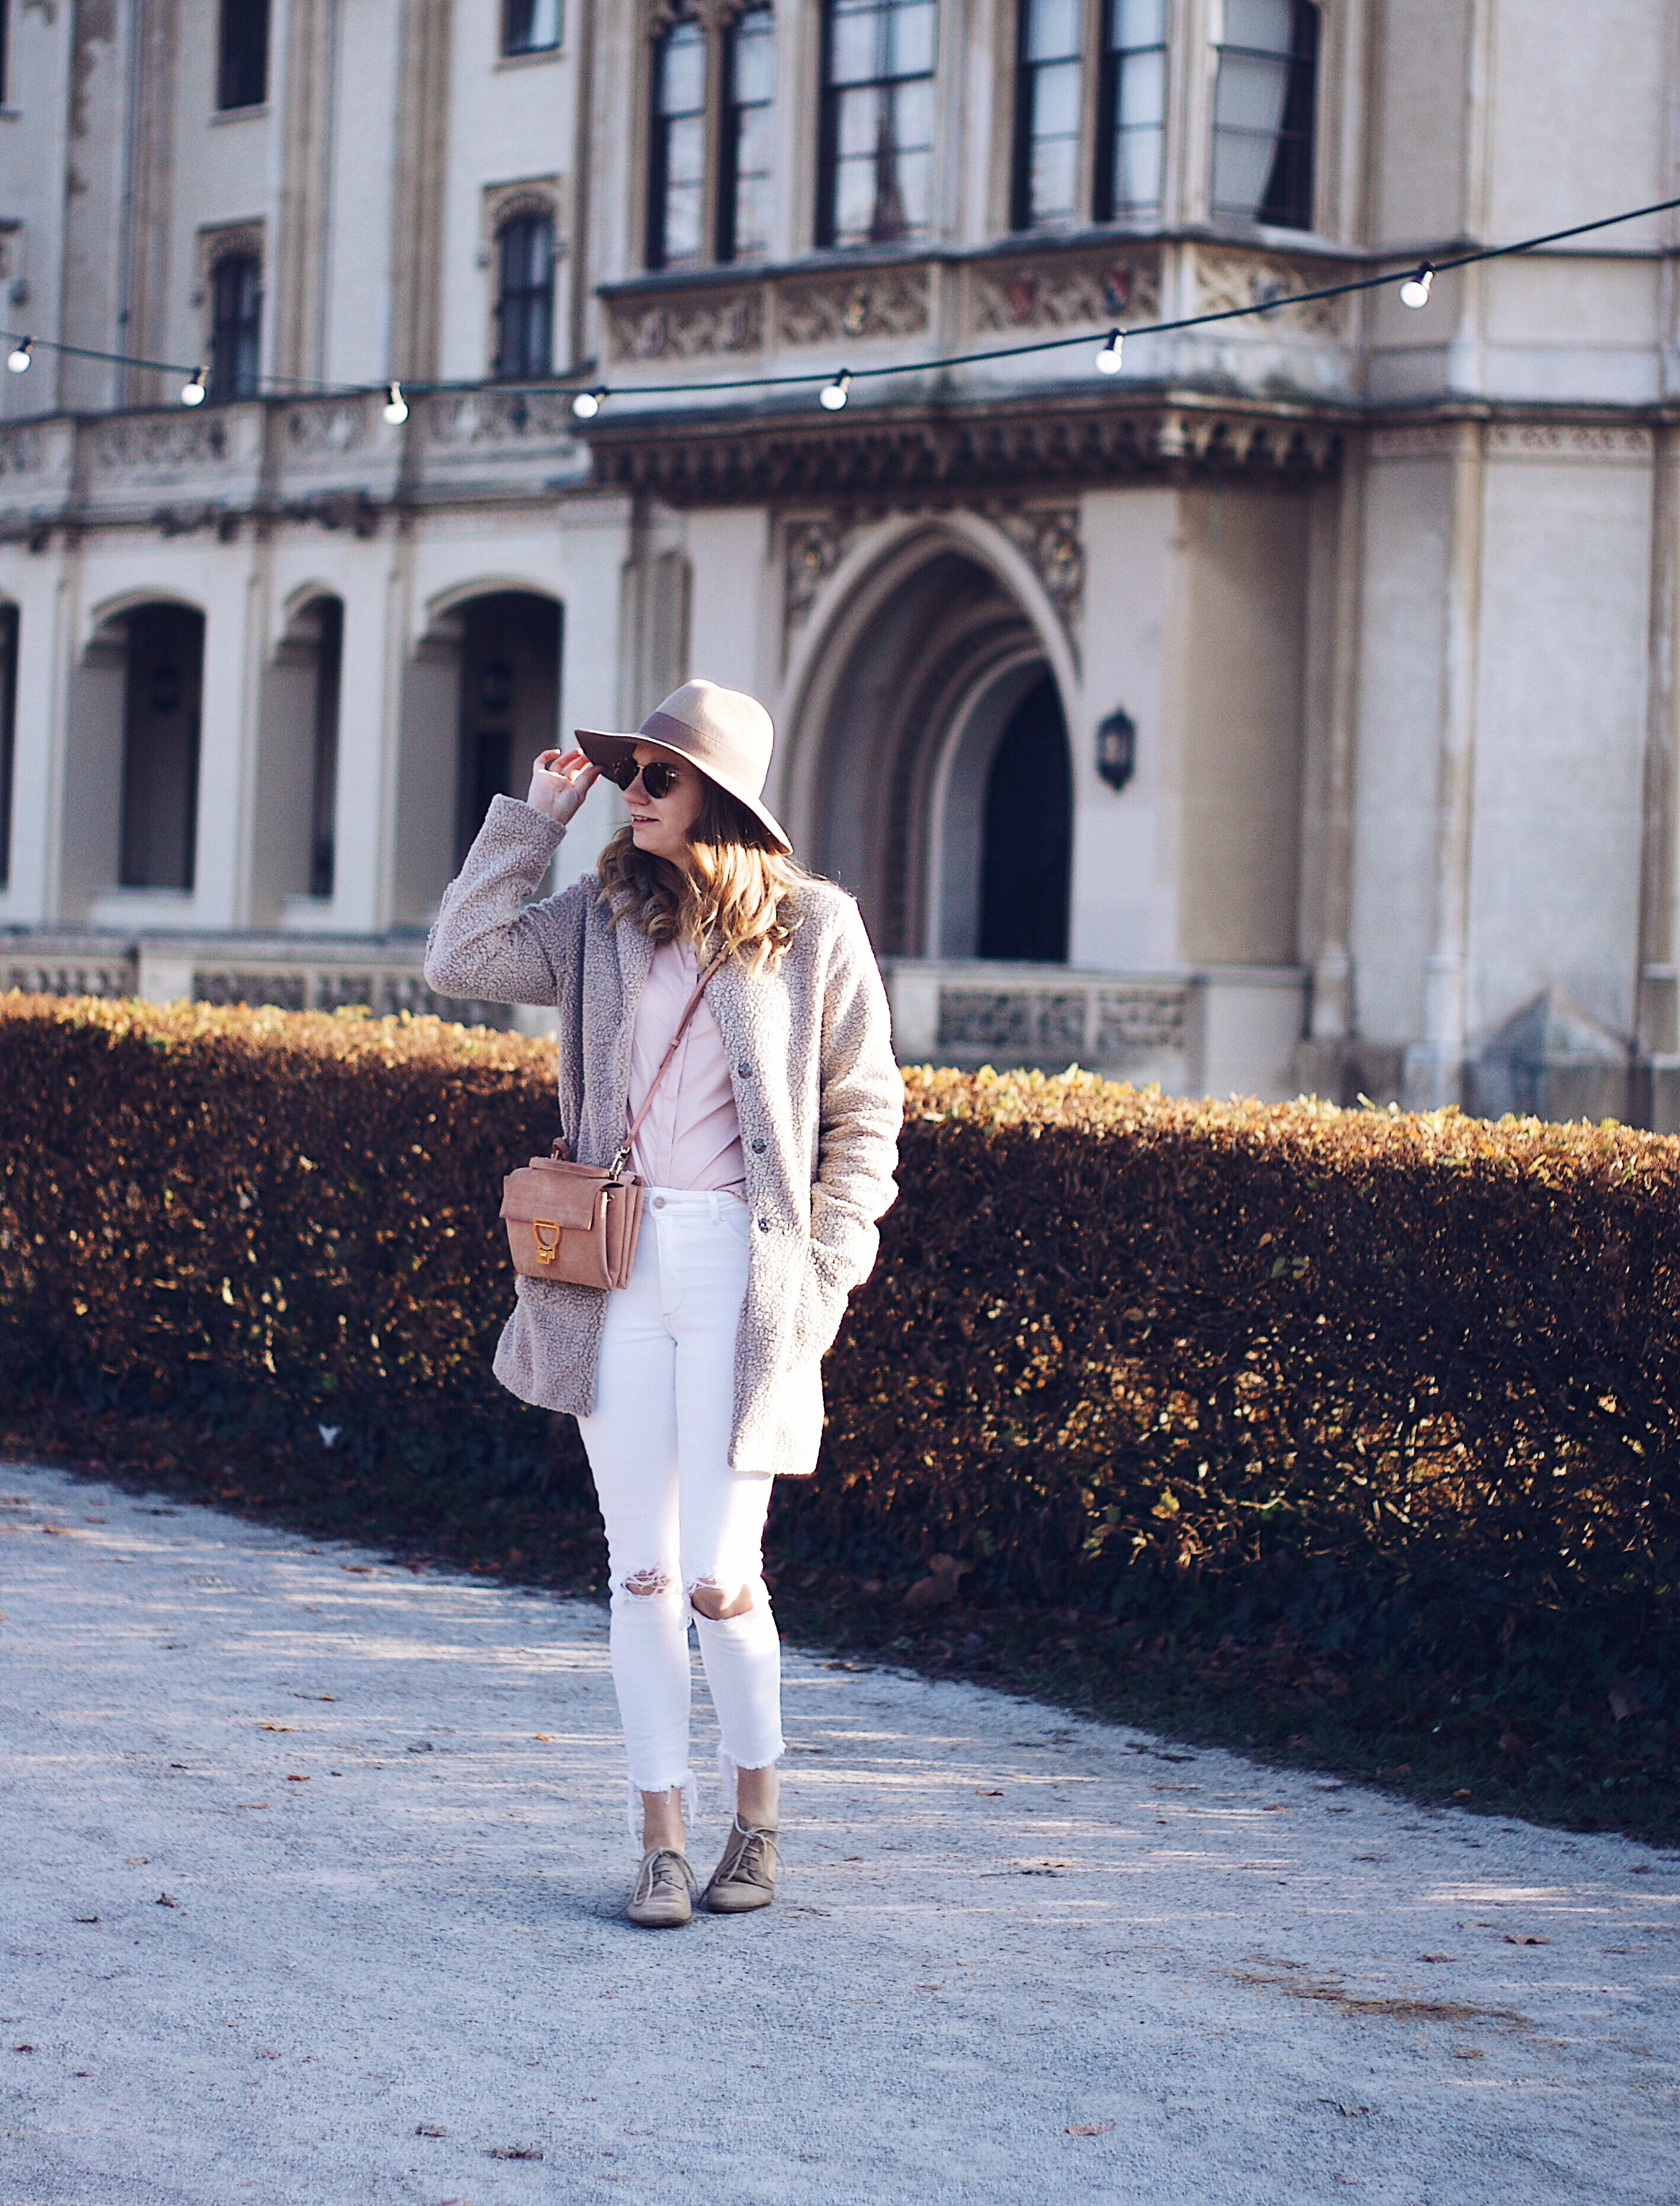 Herbst Outfit mit Hut